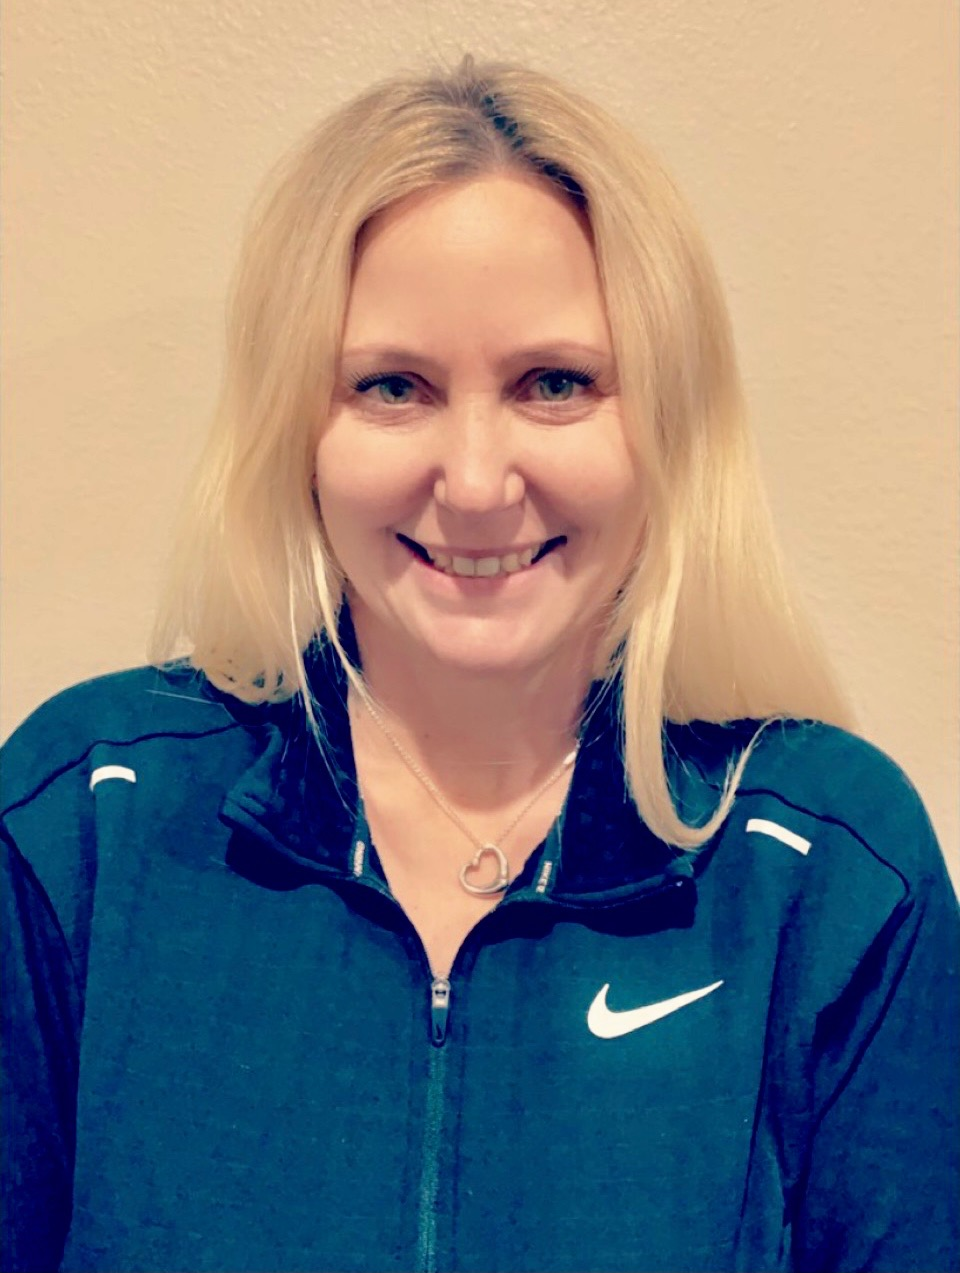 CHRISTY MEDLIN, GIRLS PROGRAM DIRECTOR / COACH